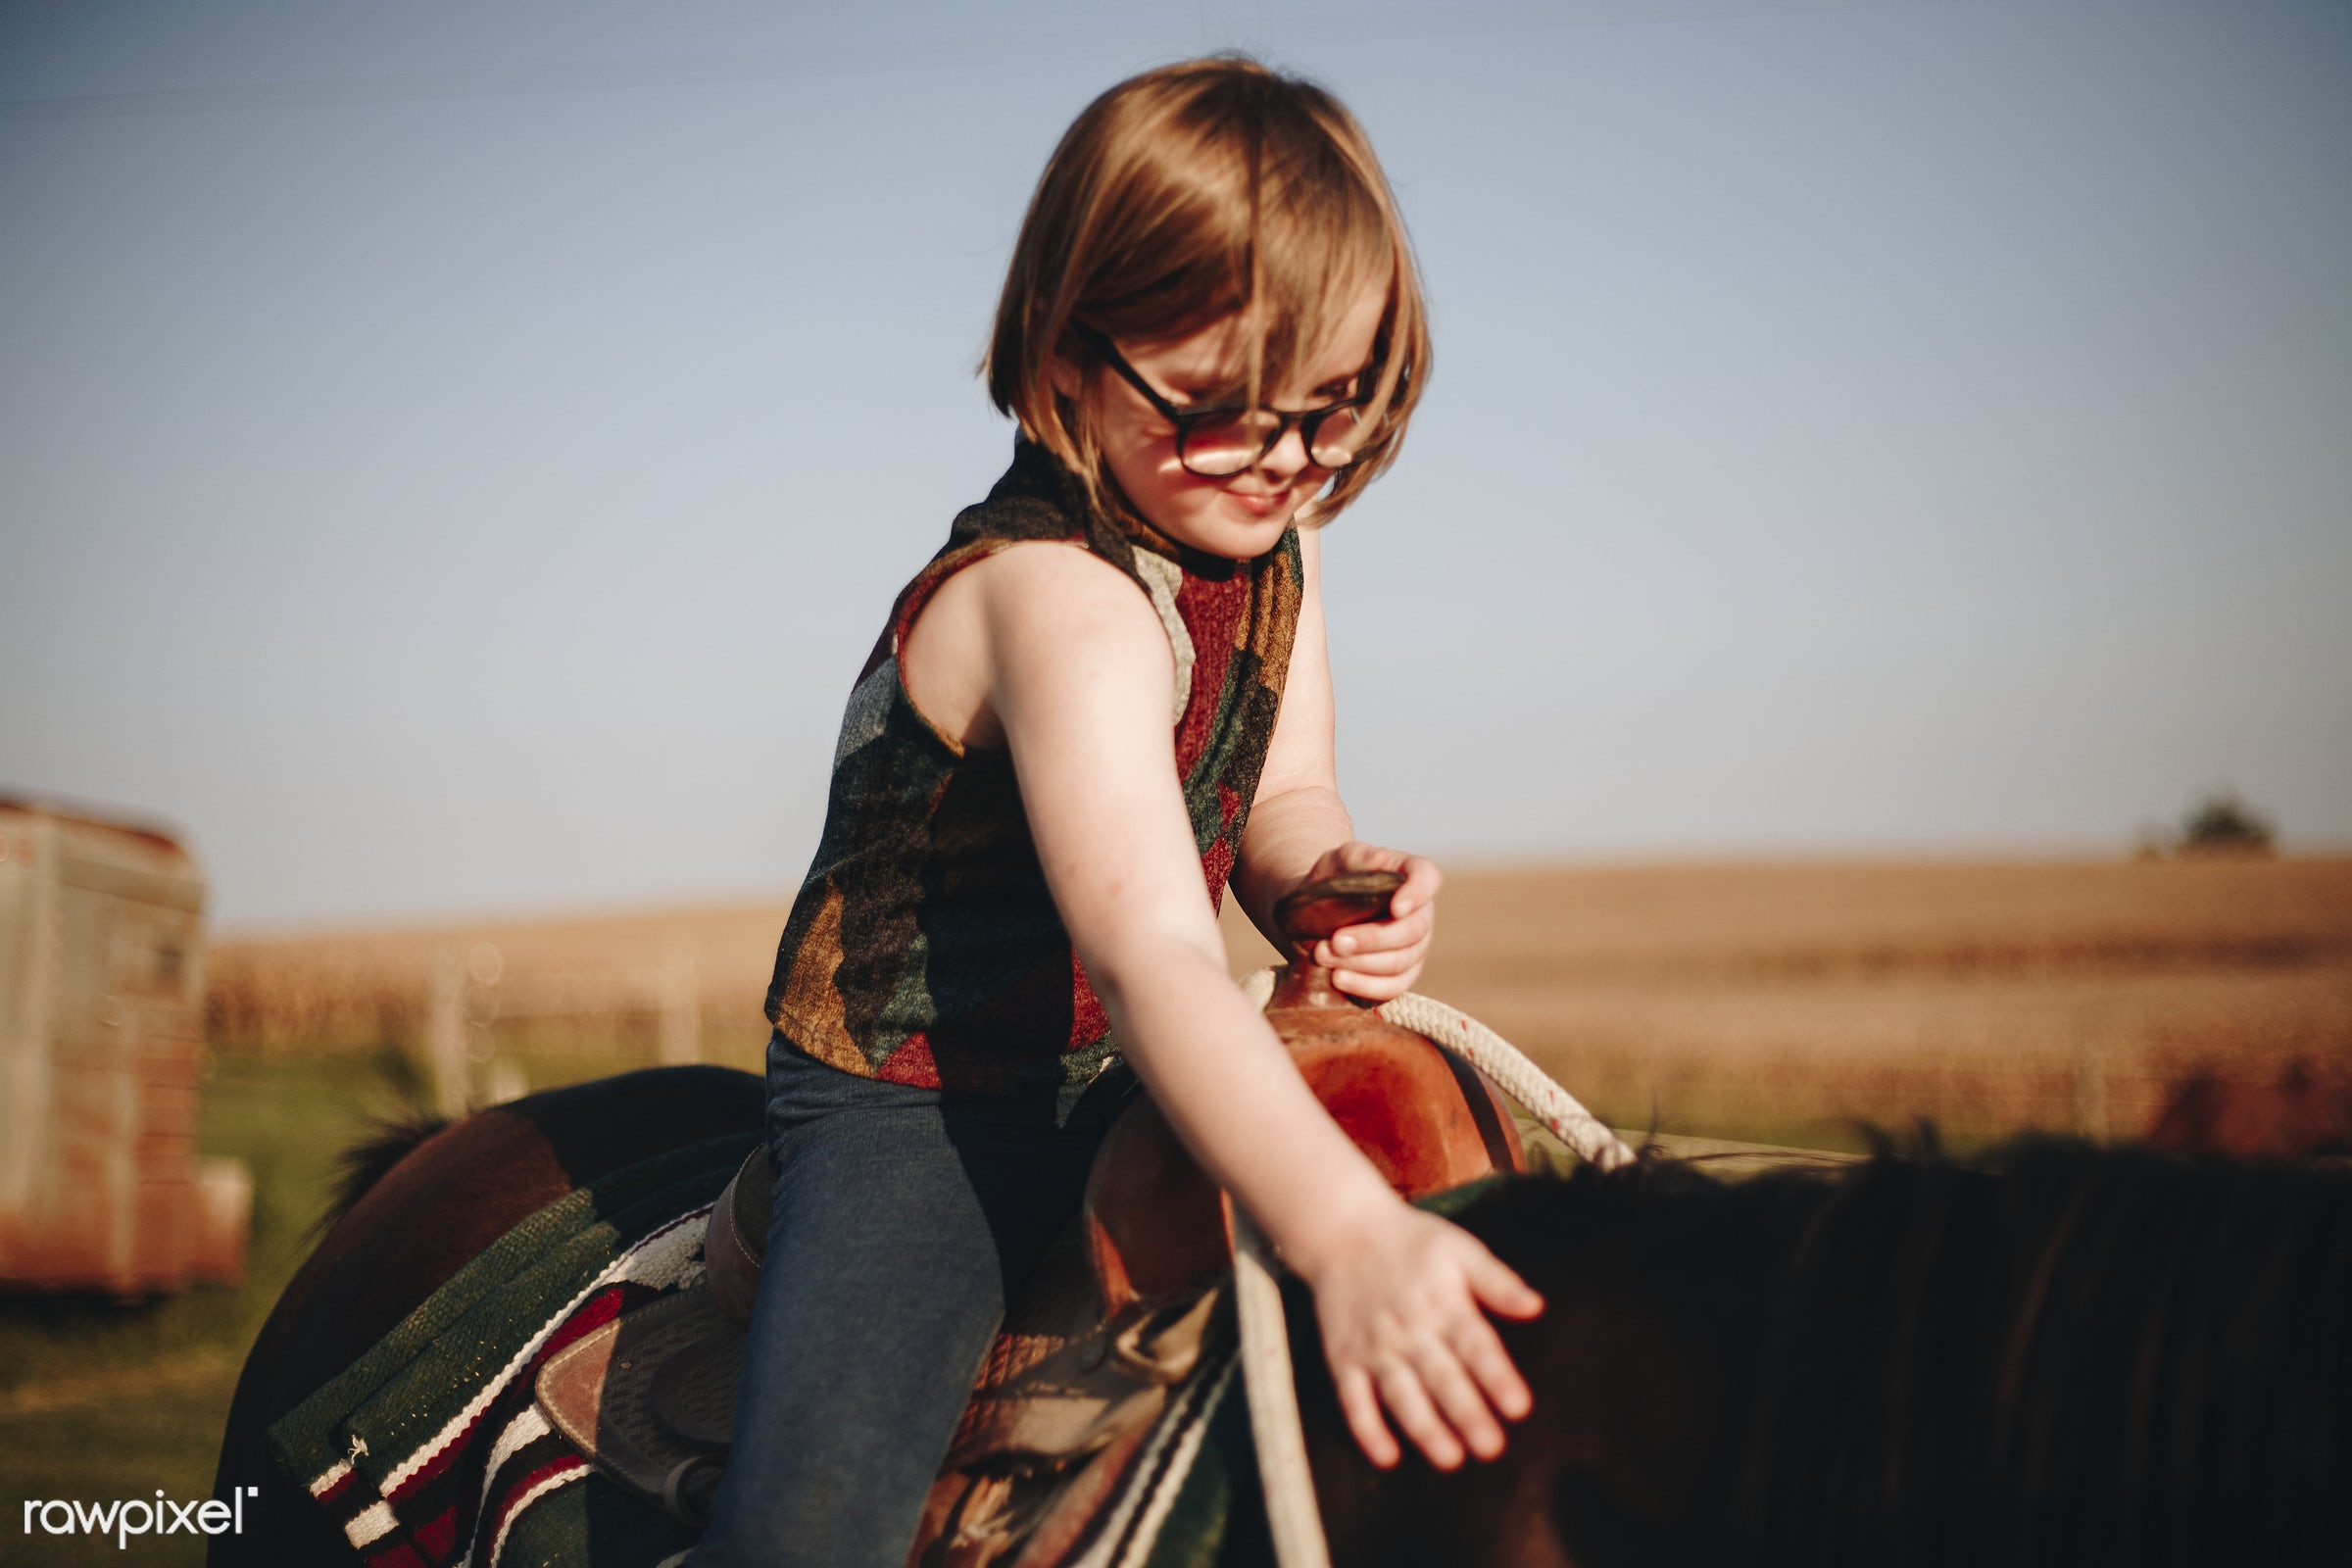 Little girl riding a horse - horse riding, activity, america, american, animal, canada, canadian, child, countryside,...